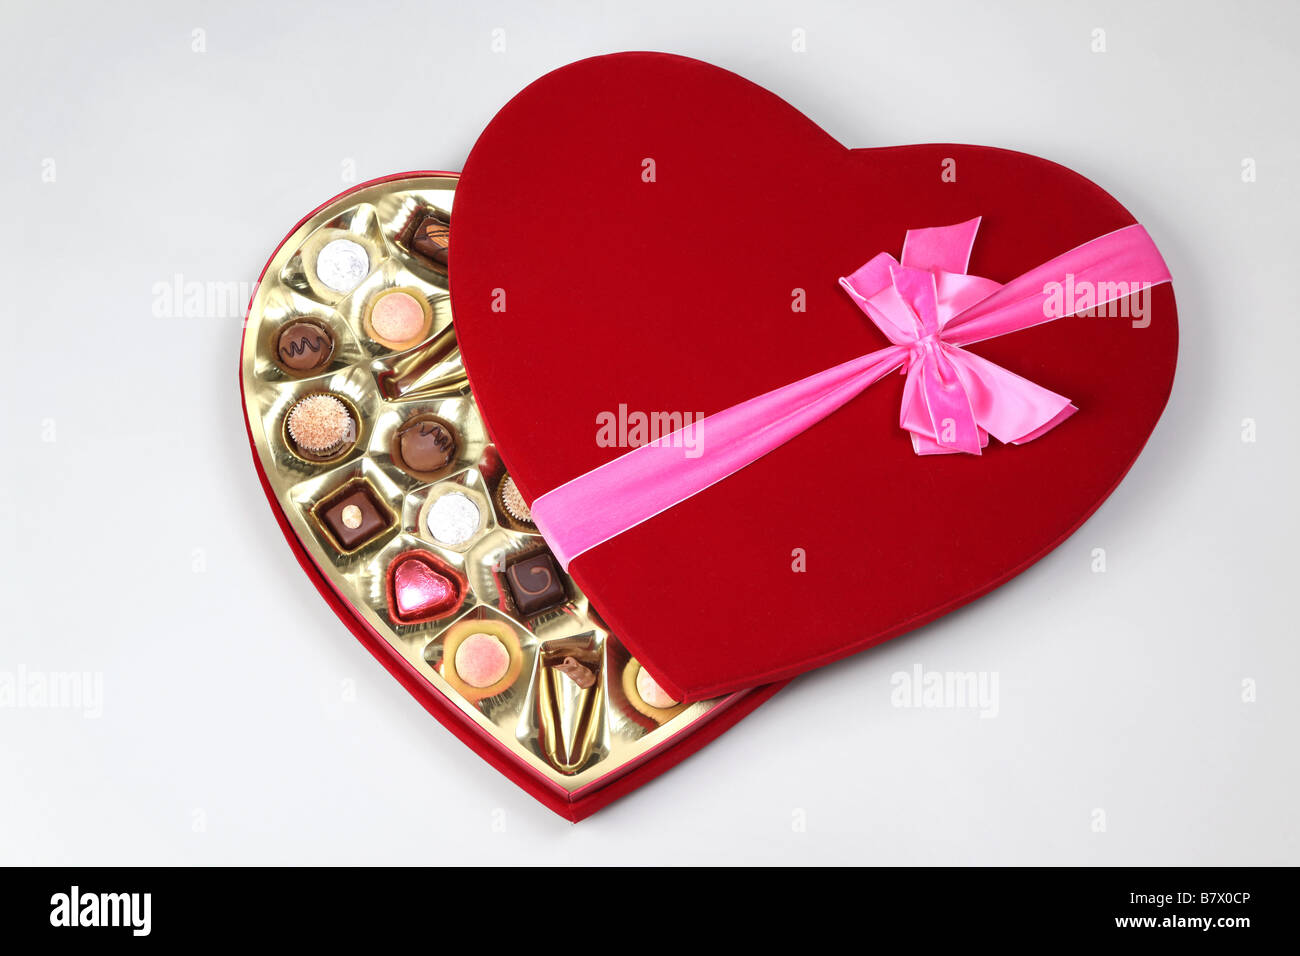 Chocolate Heart Shaped Gift Boxes : Heart shaped gift wrapped chocolate box with a pink ribbon